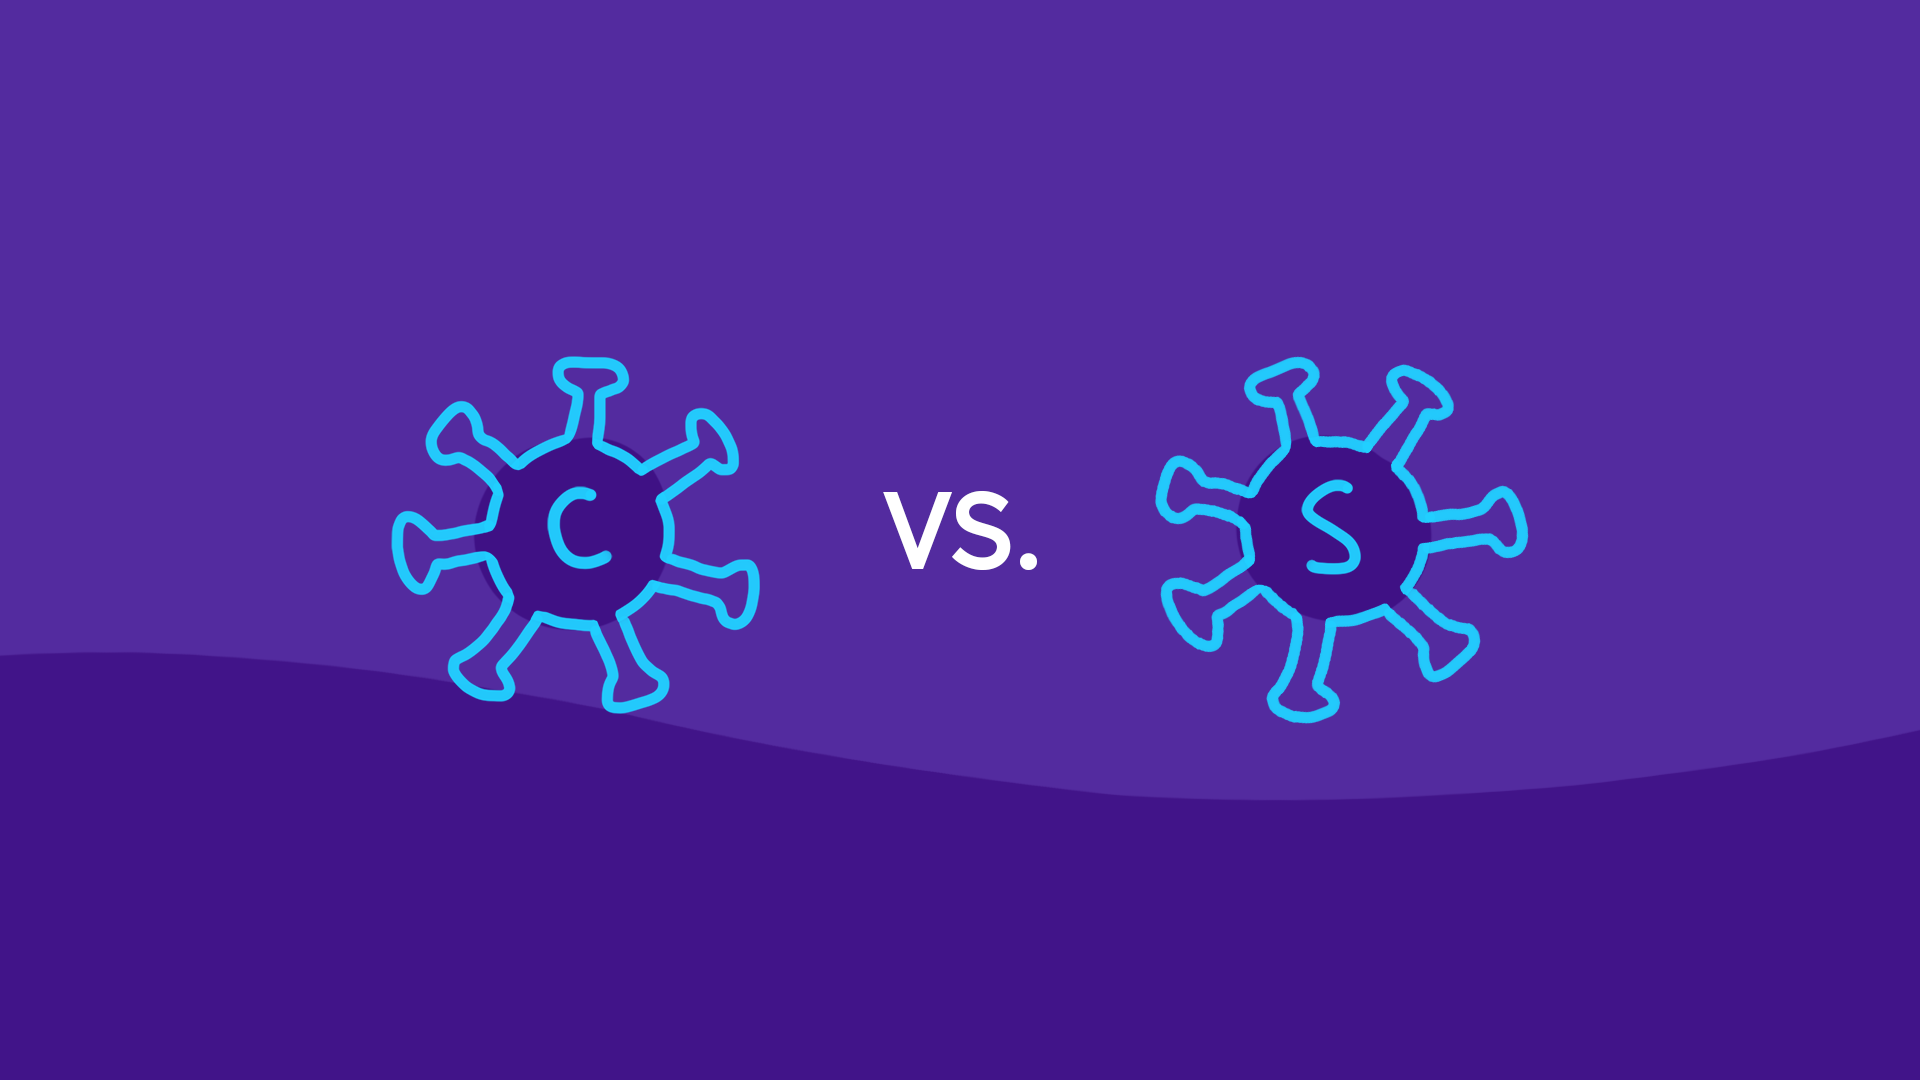 COVID-19 vs. SARS: Learn the differences